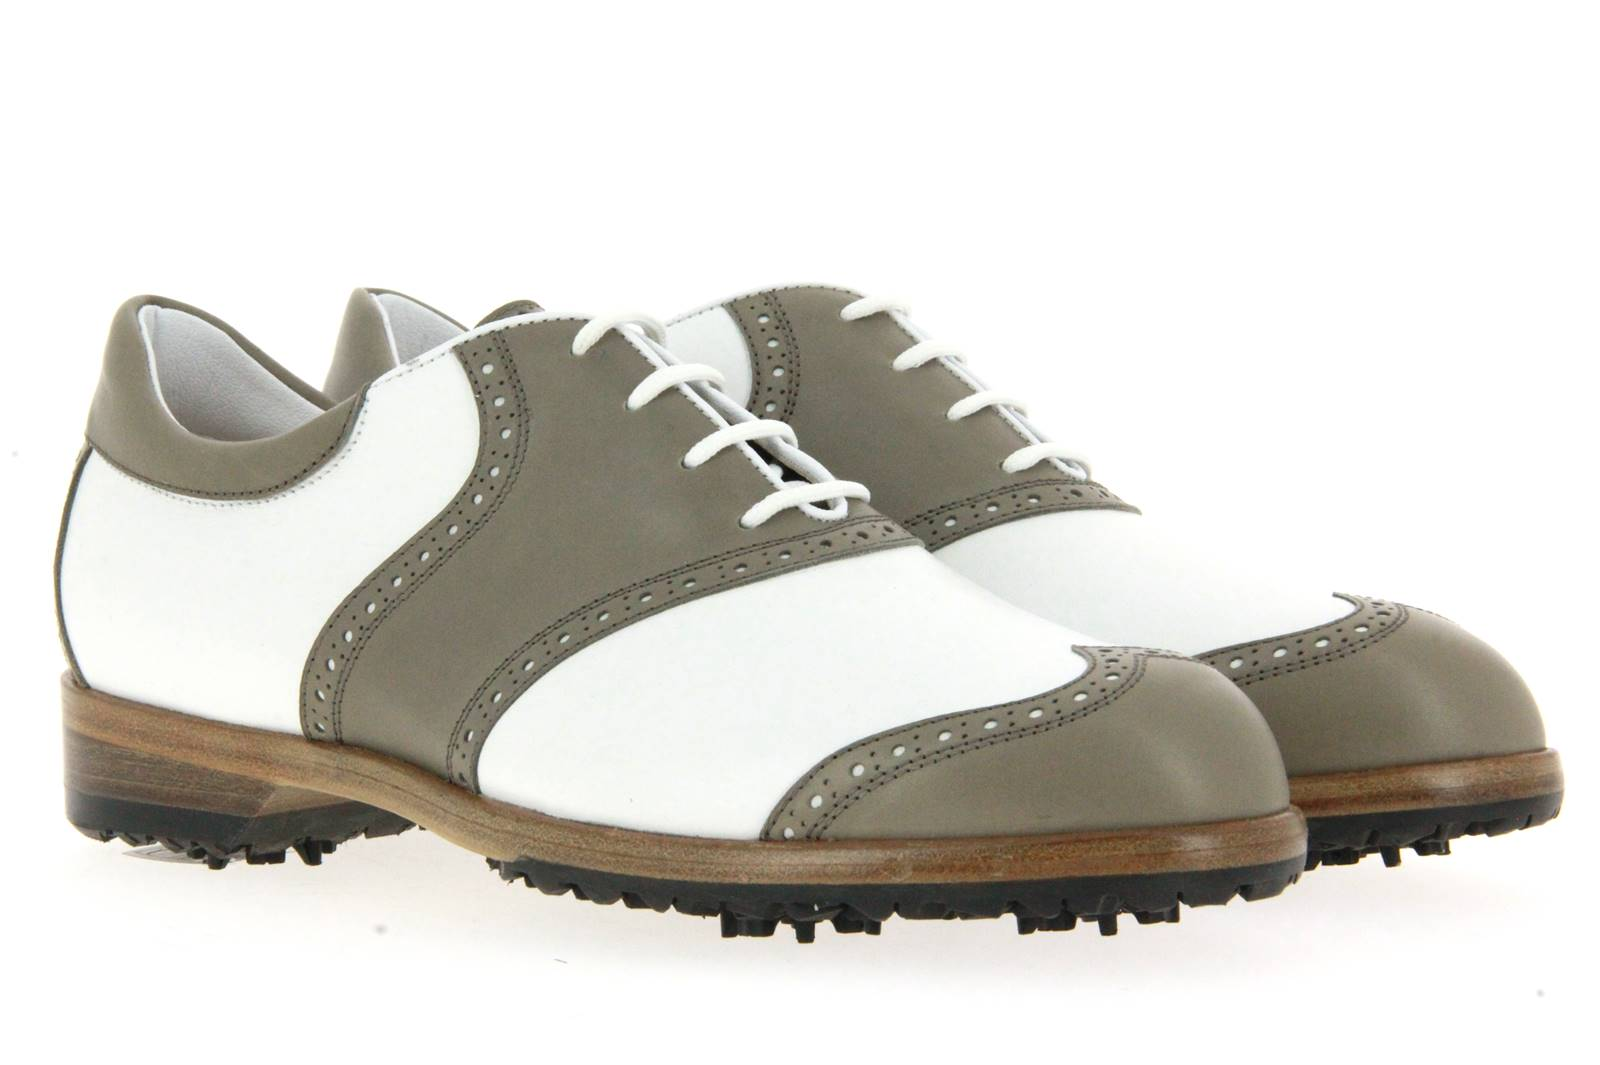 Tee Golf Shoes women's - golf shoe SUSY BIANCO TOPO